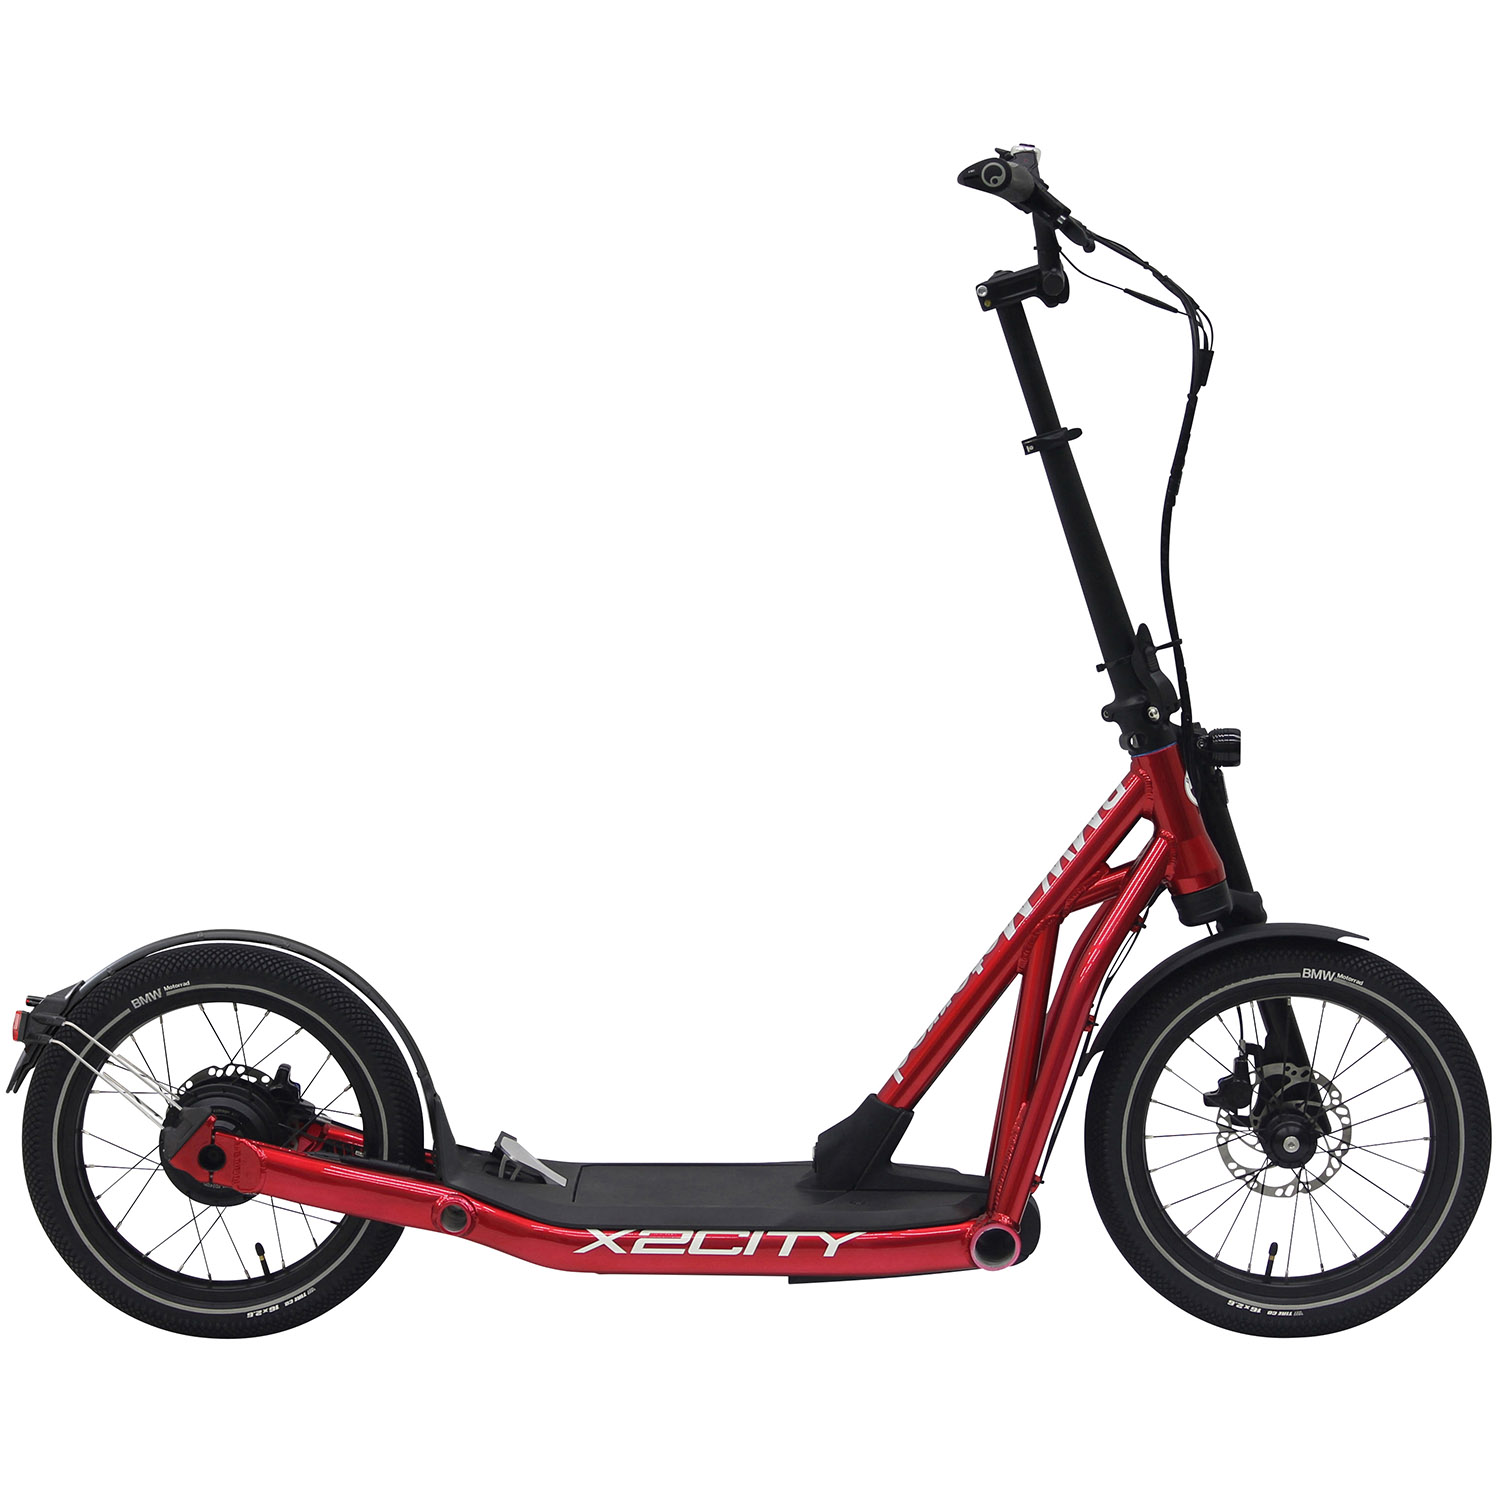 bmw x2 city e scooter rot online shop zweirad stadler. Black Bedroom Furniture Sets. Home Design Ideas